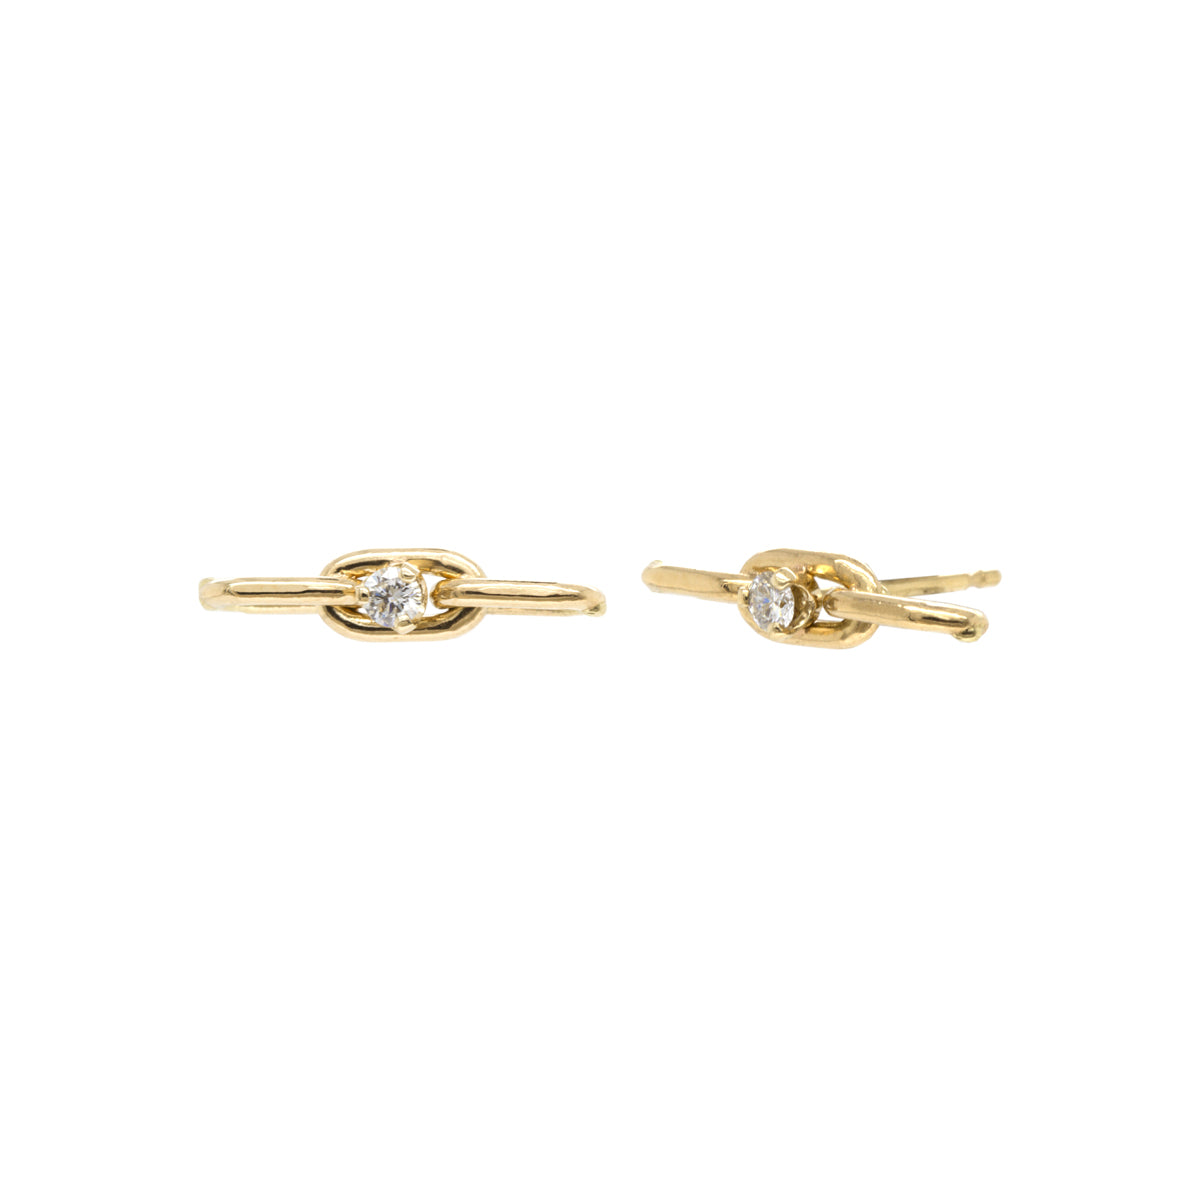 14k large oval chain 3 link stud earrings with prong diamonds